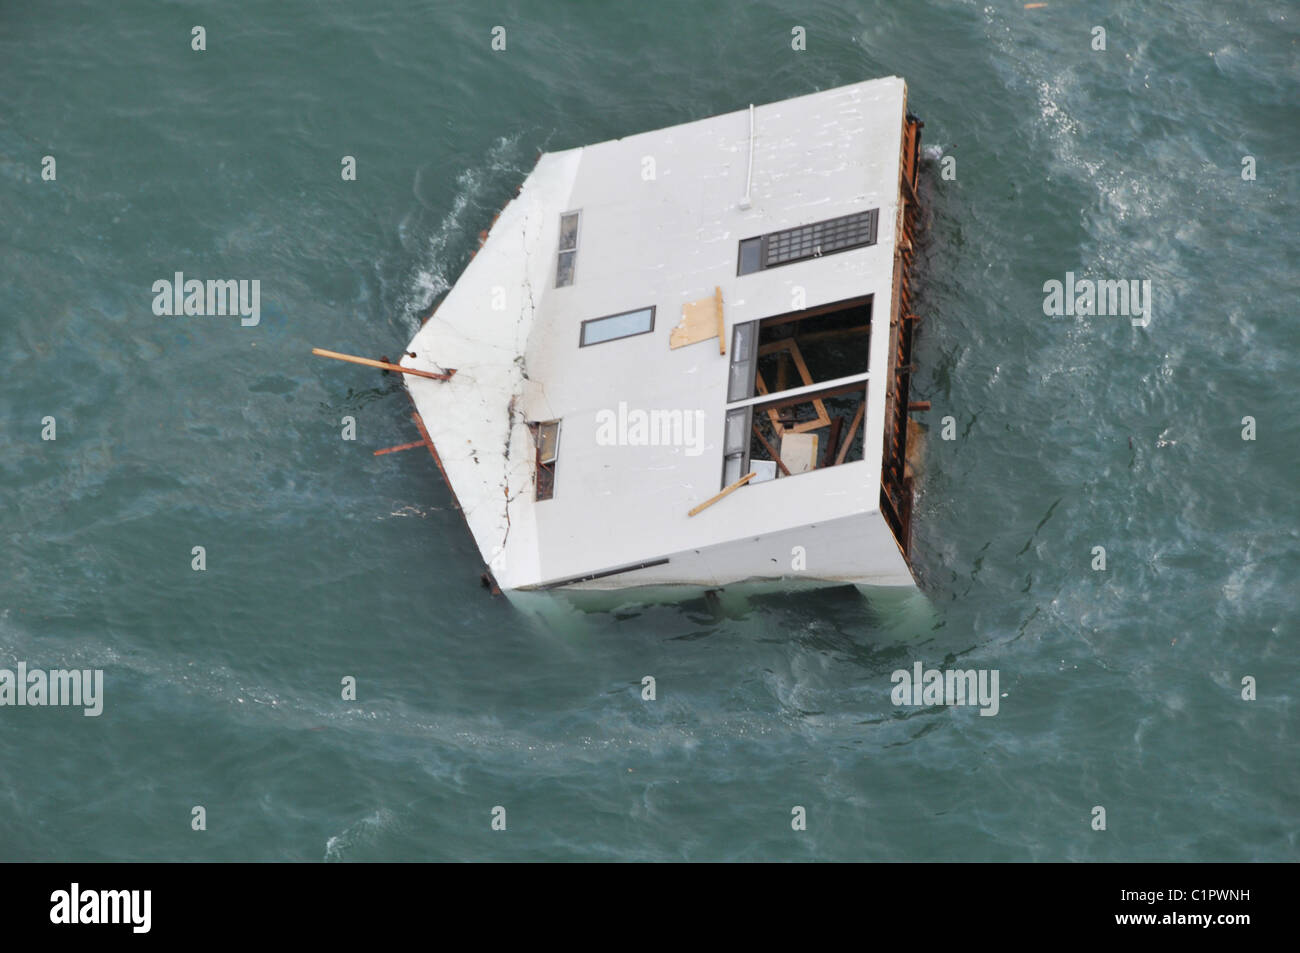 Aerial photo taken March 14 2011 of a house floating at sea near Sendai, Japan, in the aftermath of the earthquake Stock Photo